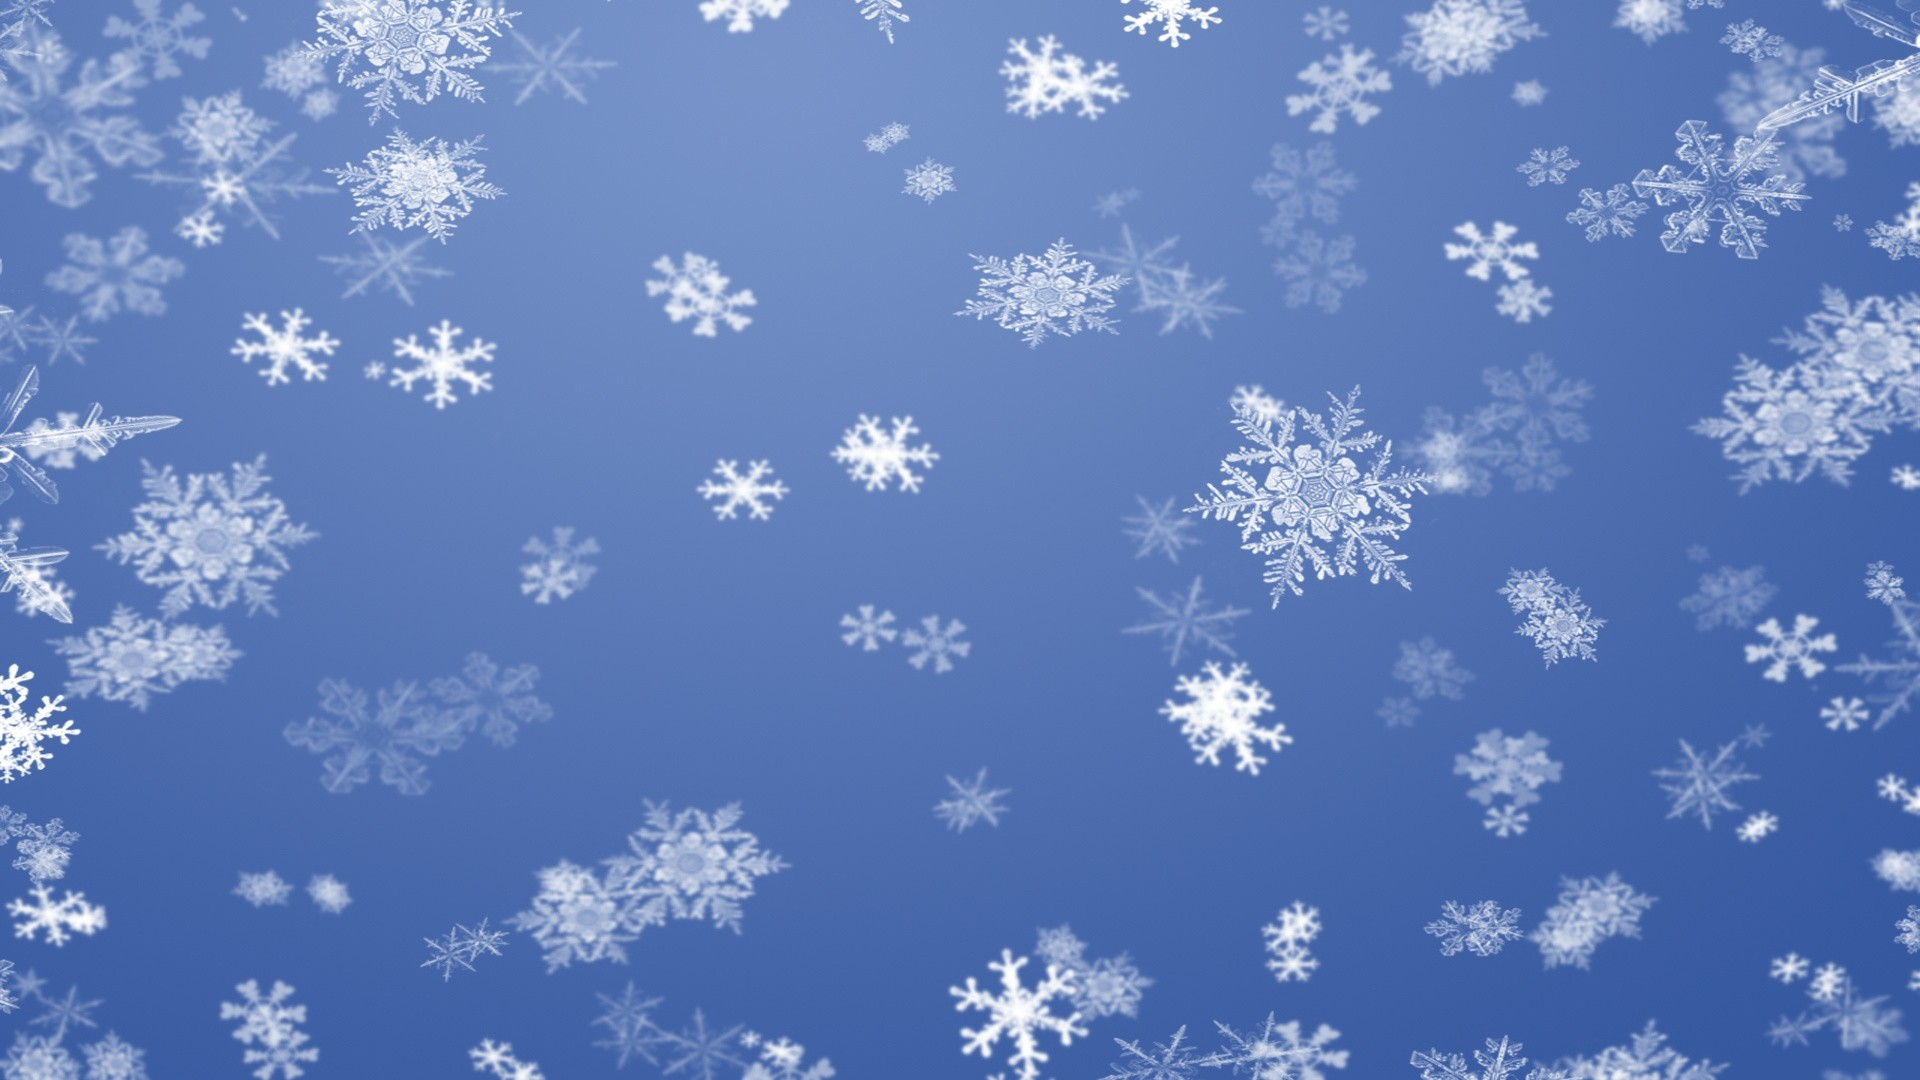 Res: 1920x1080, Wallpaper Snowflakes, Background, winter, Pattern HD, Picture, Image